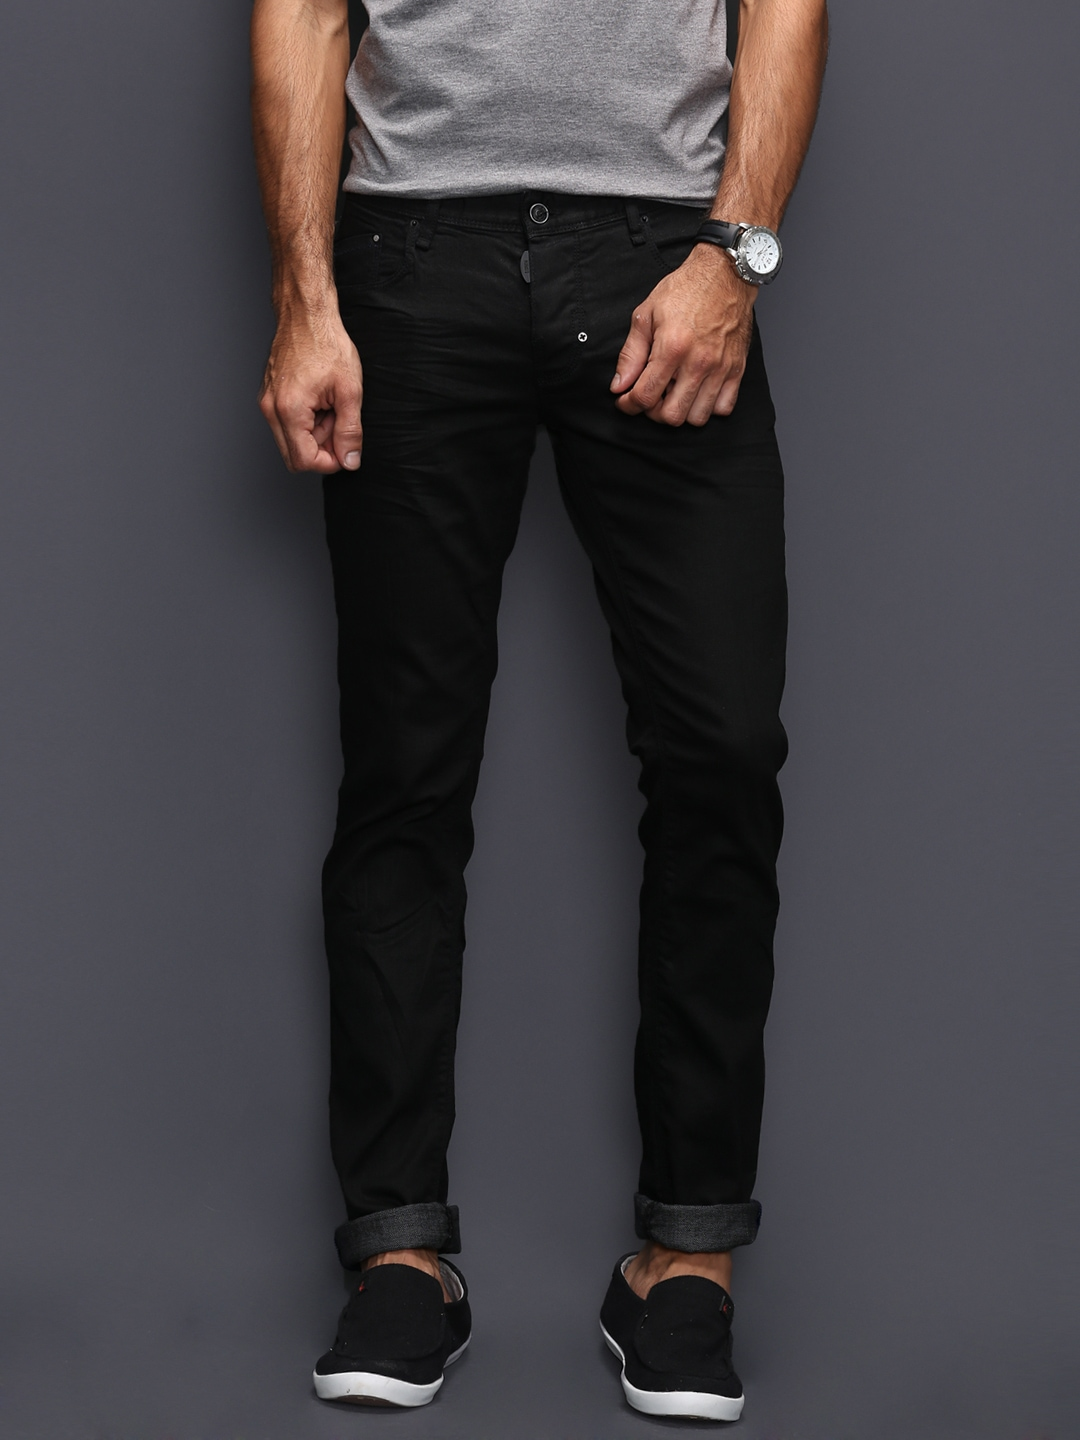 Mens Black Jeans Slim Fit - Jeans Am